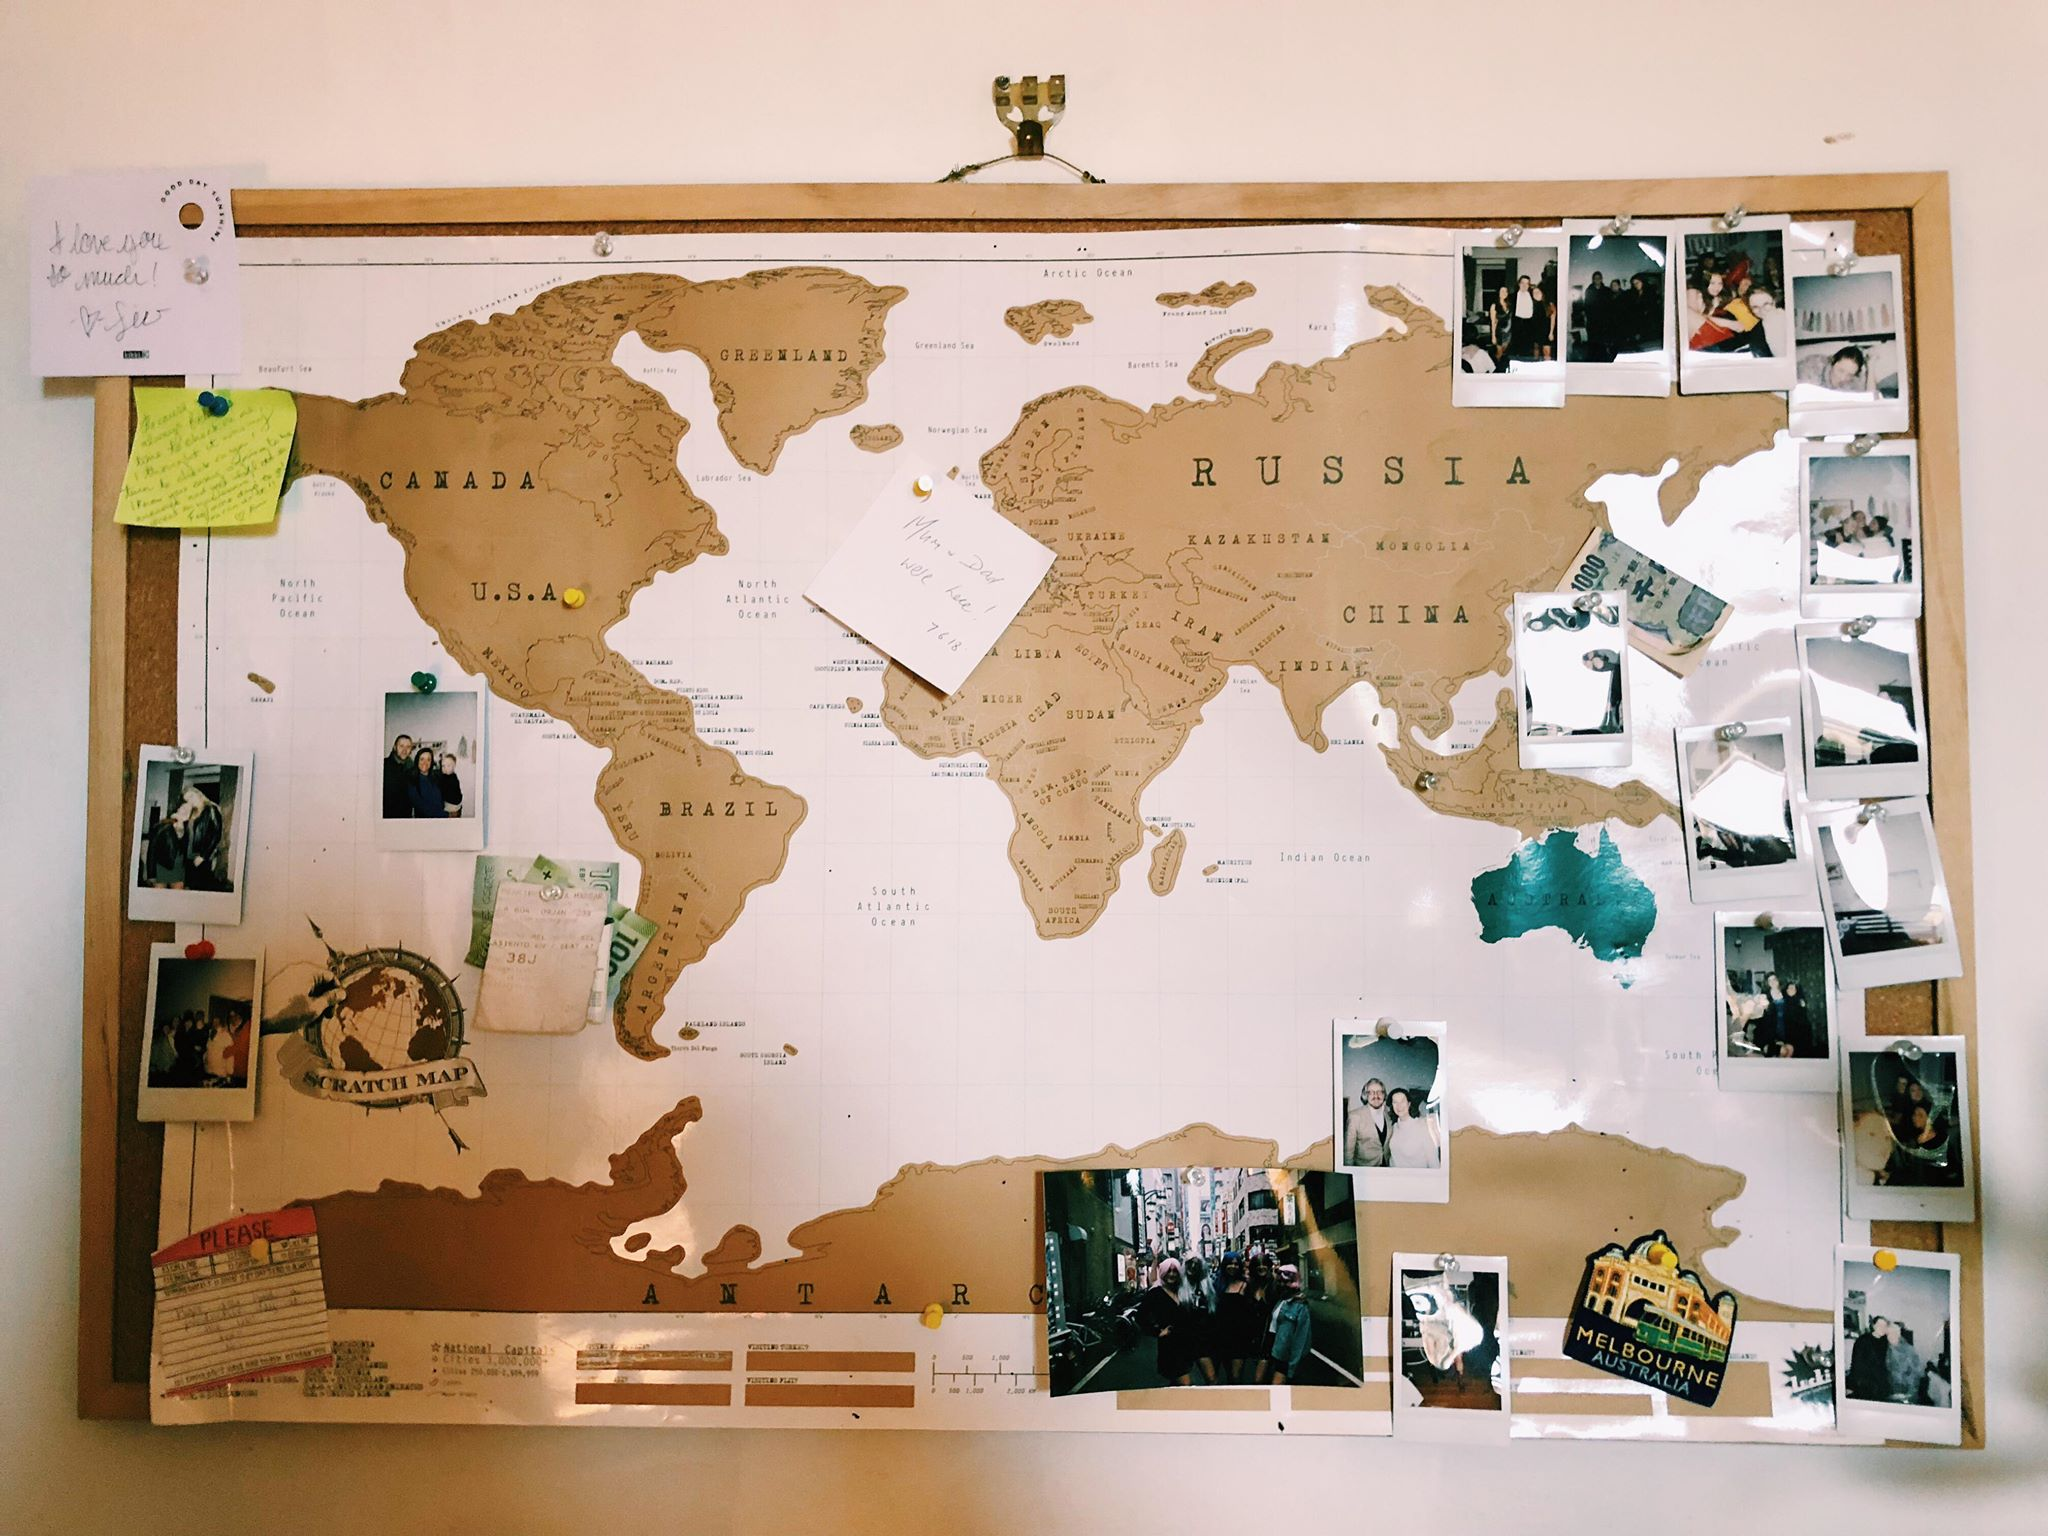 A world map which you can find in Sophia's room.